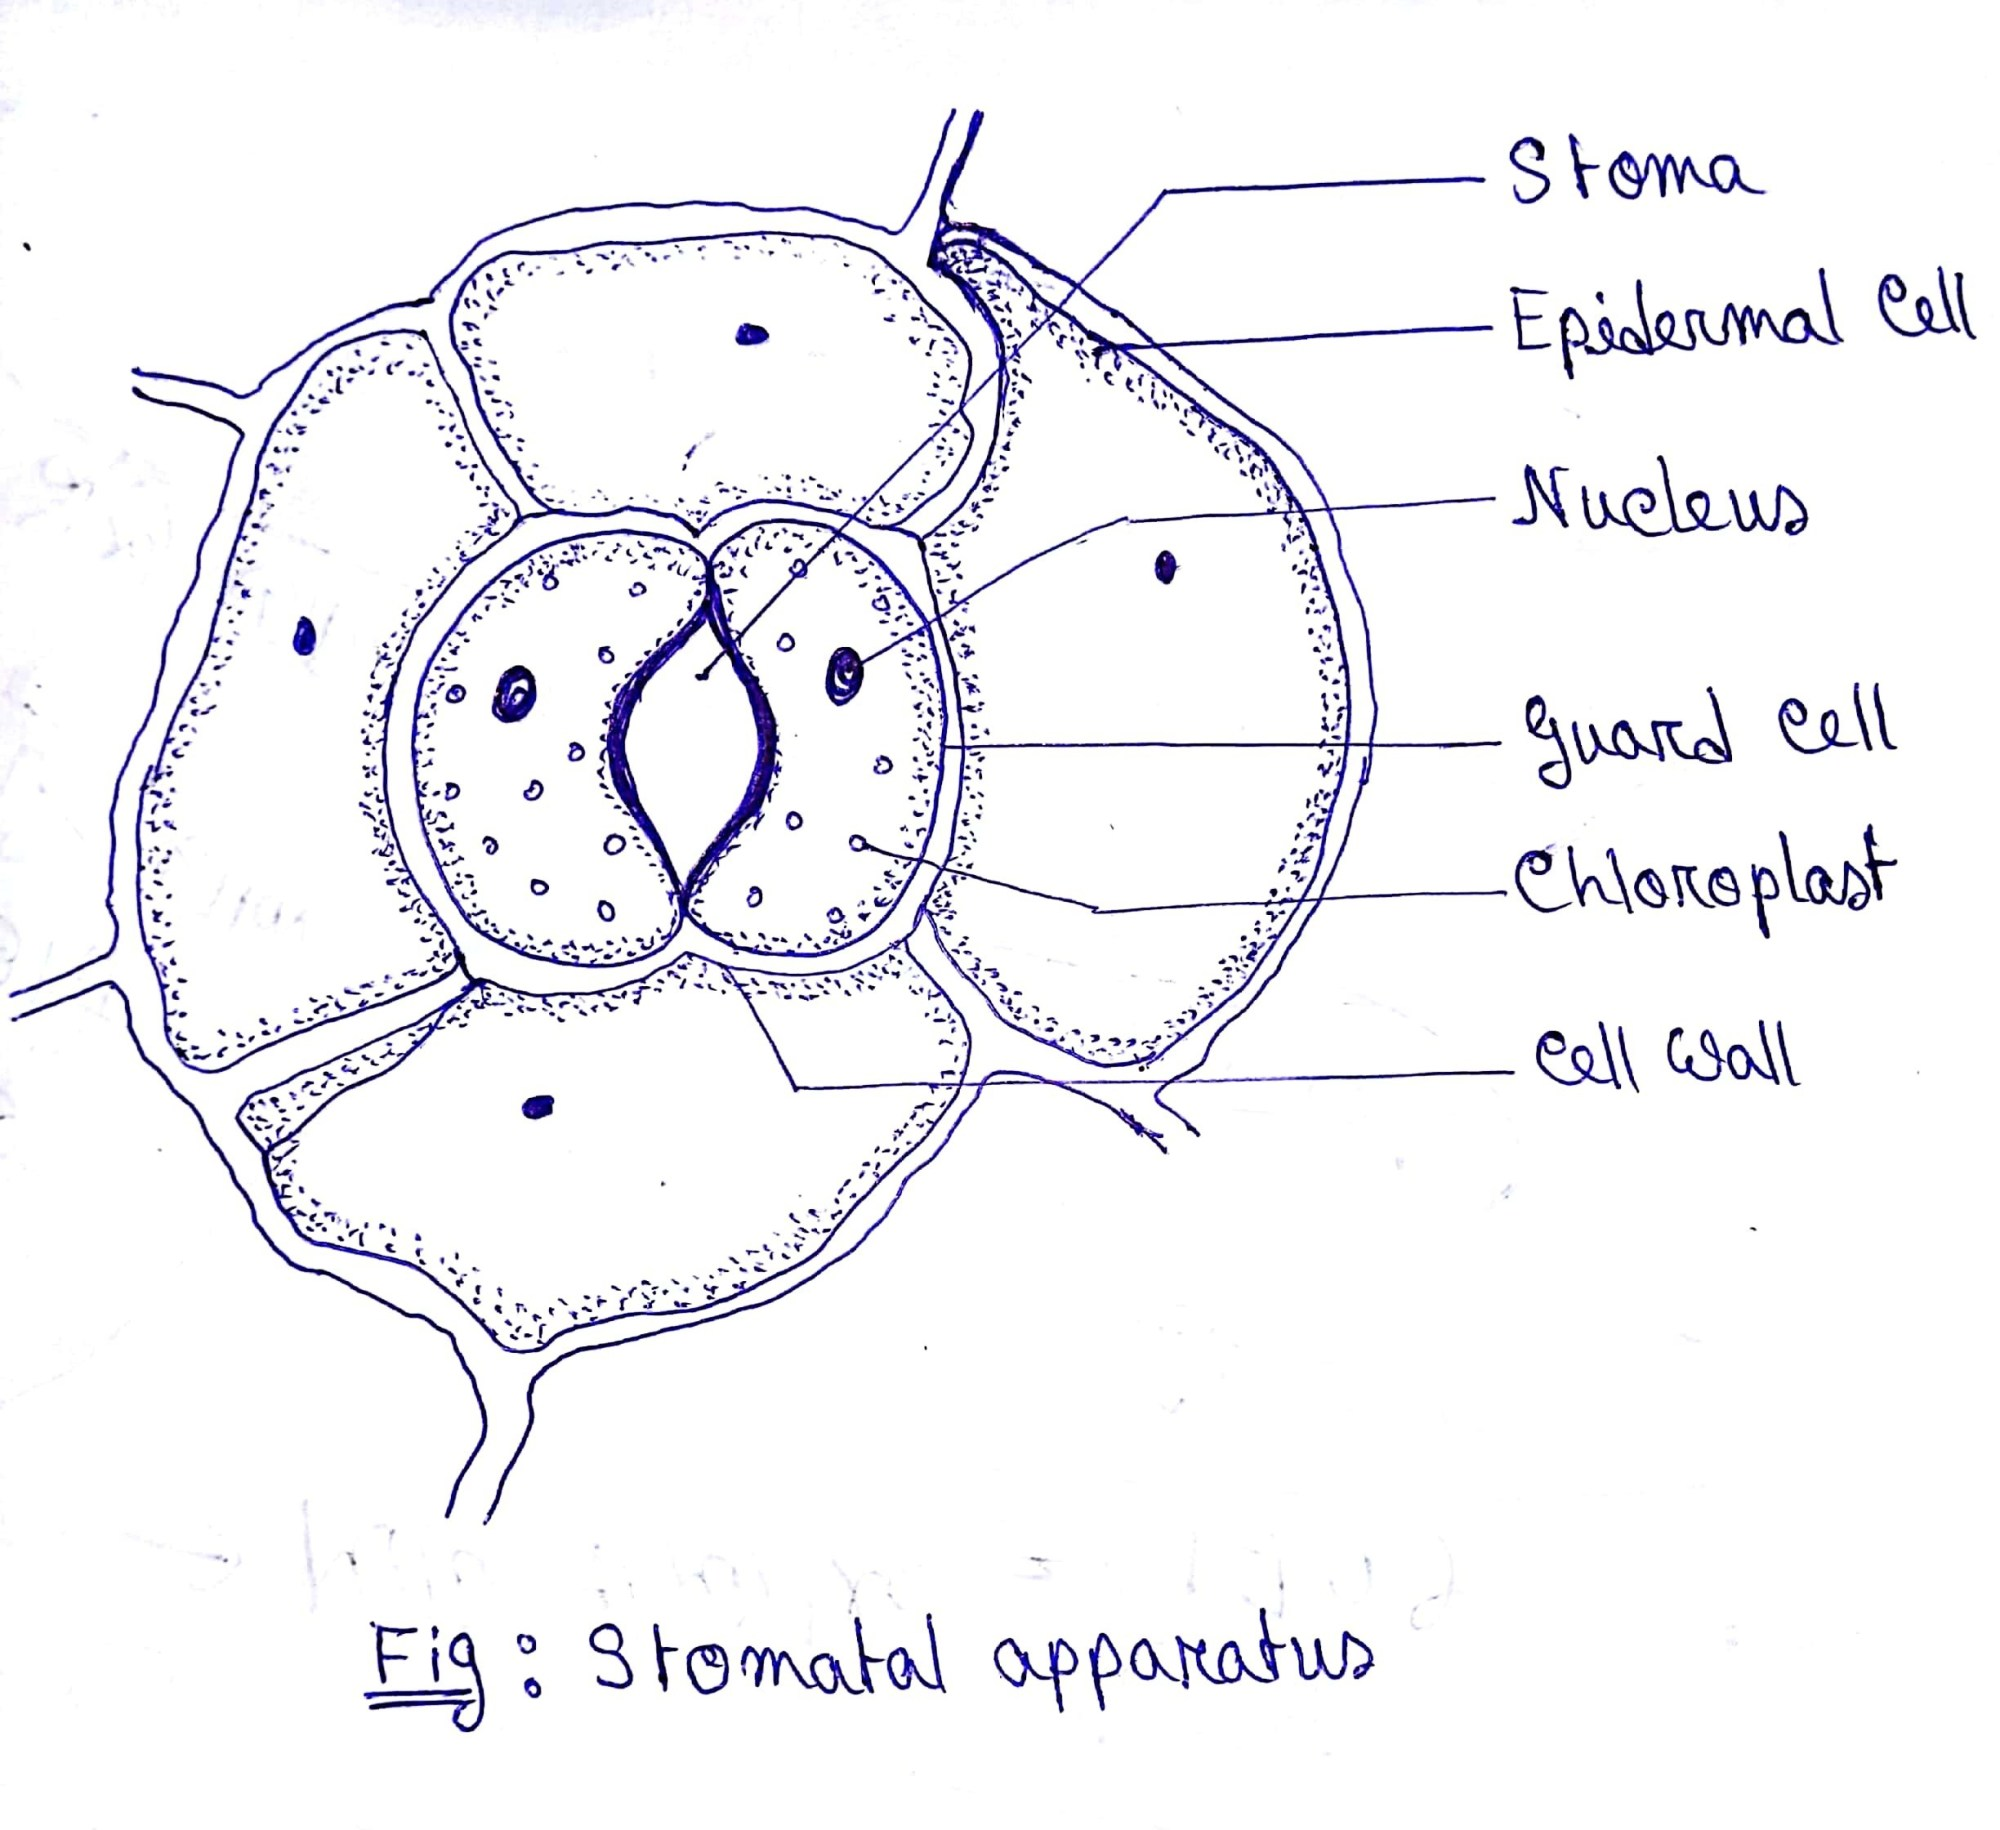 hight resolution of leaf cell diagram label wiring diagram home draw a diagram of stomatal apparatus found in the